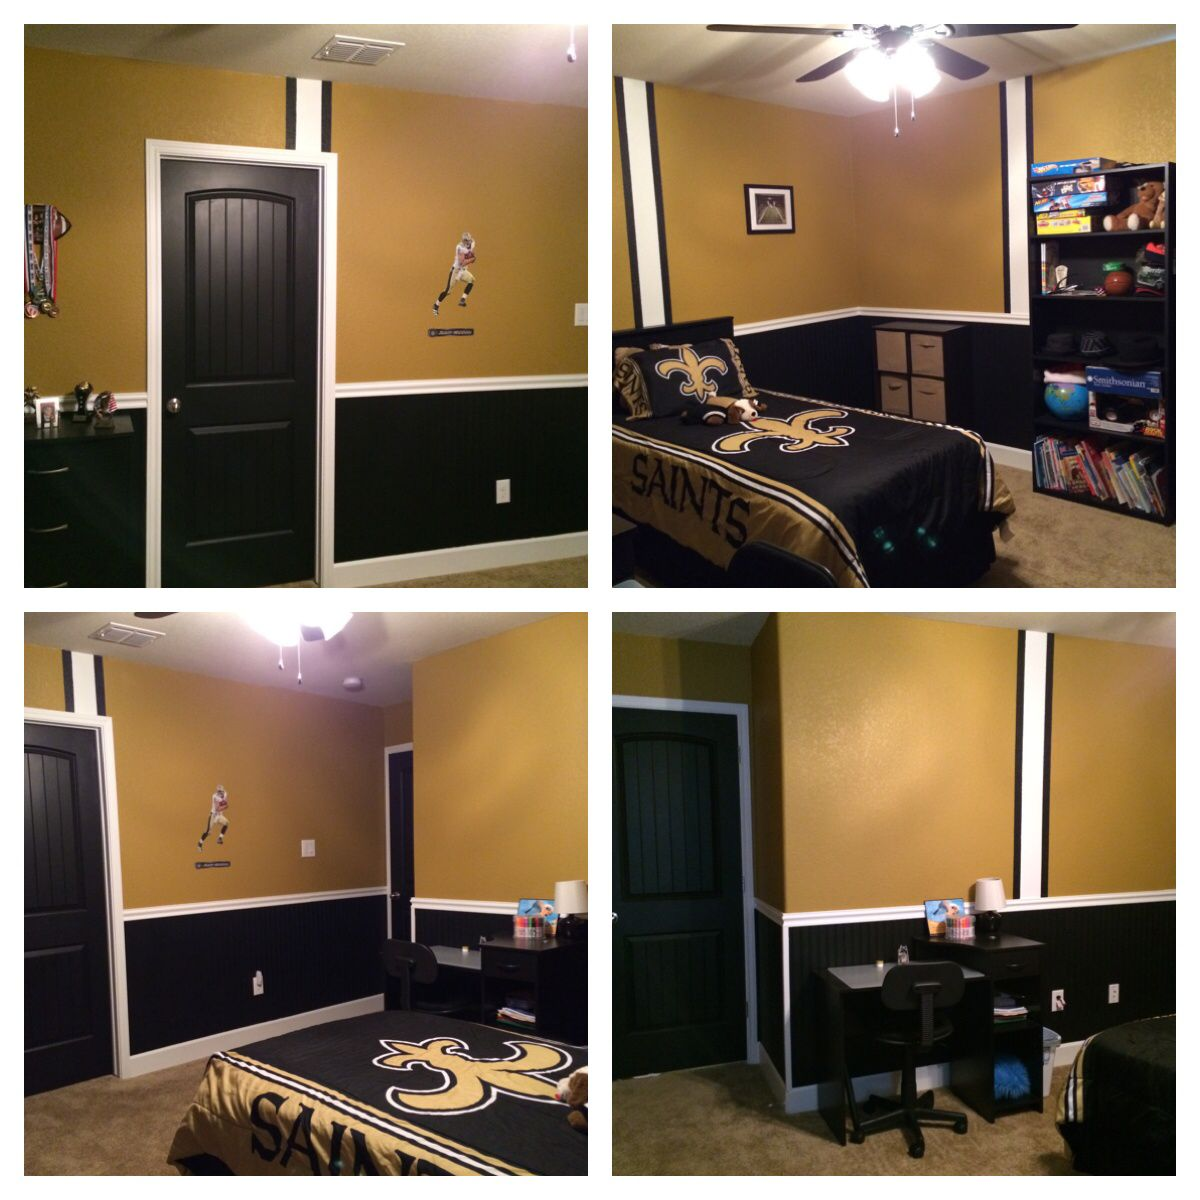 Final Product-New Orleans Saints Bedroom